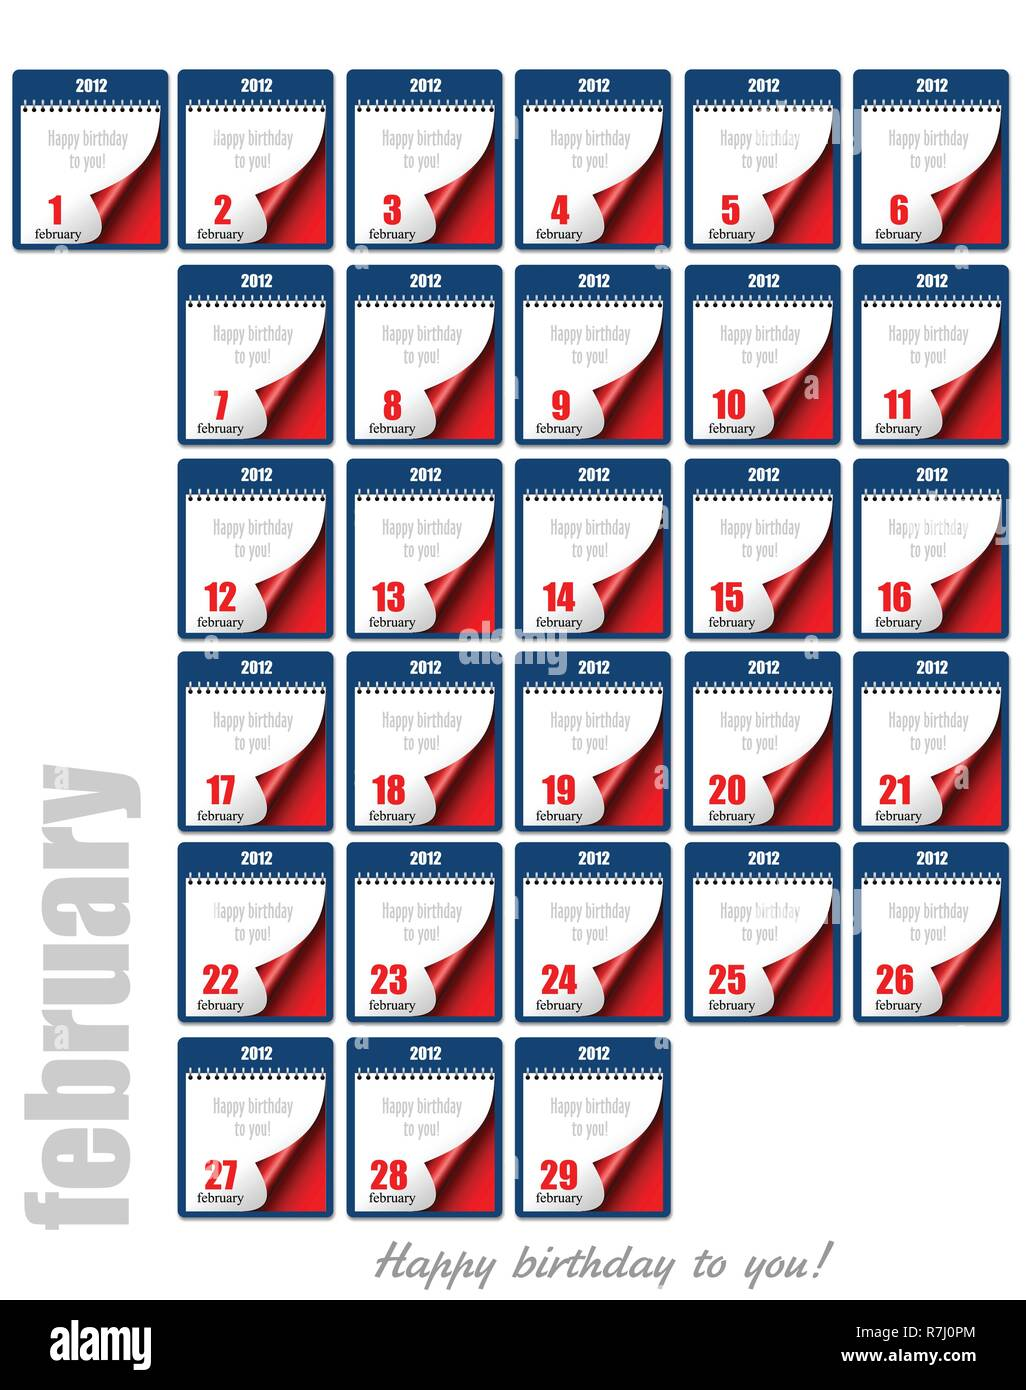 Tear-off Calendar 2012. Each day of February. Happy birthday to you! Vector illustration - Stock Image